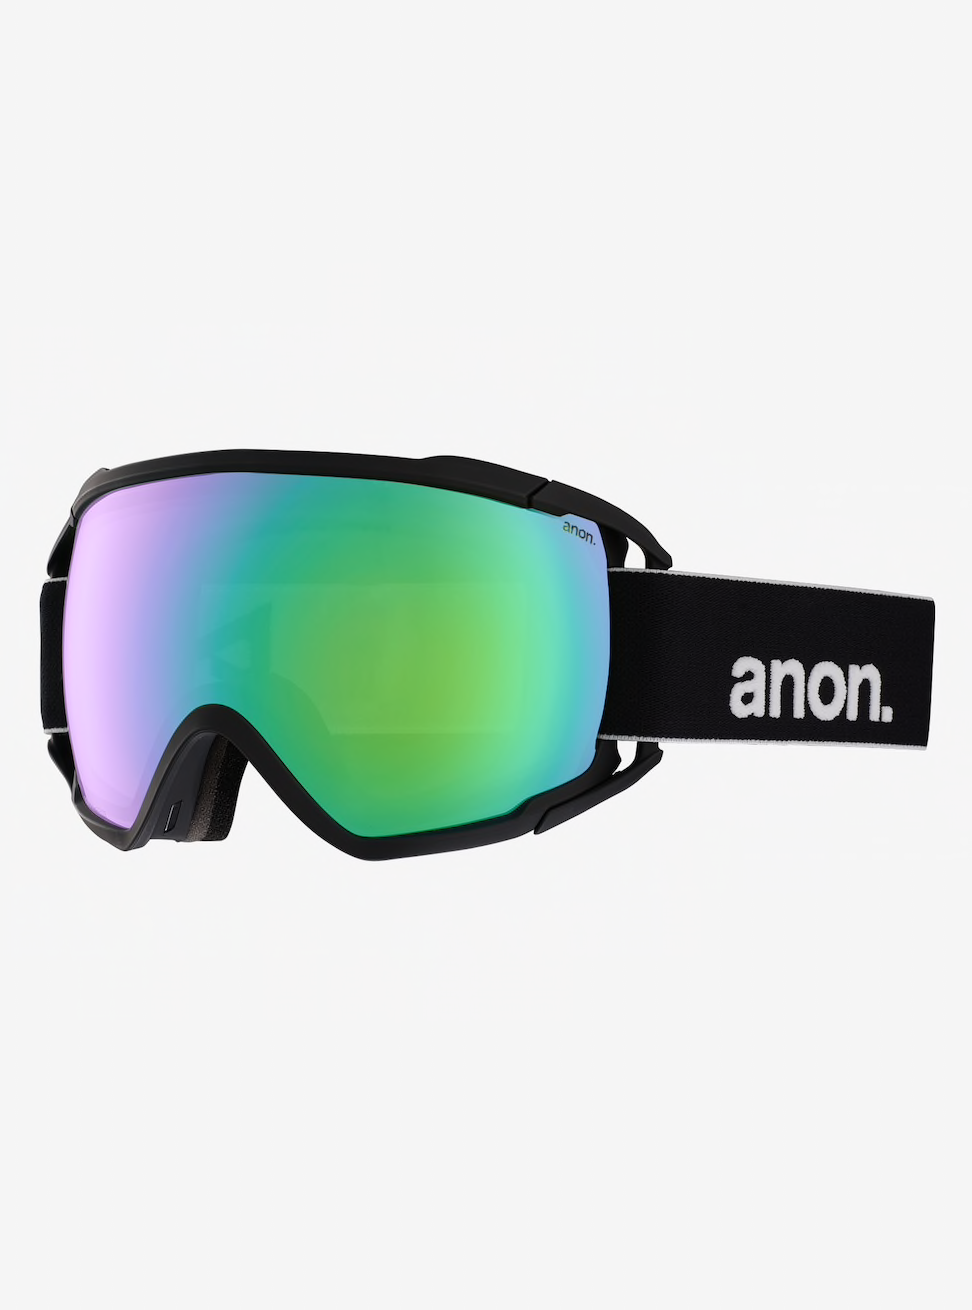 2019 Anon Circuit Goggle - Green